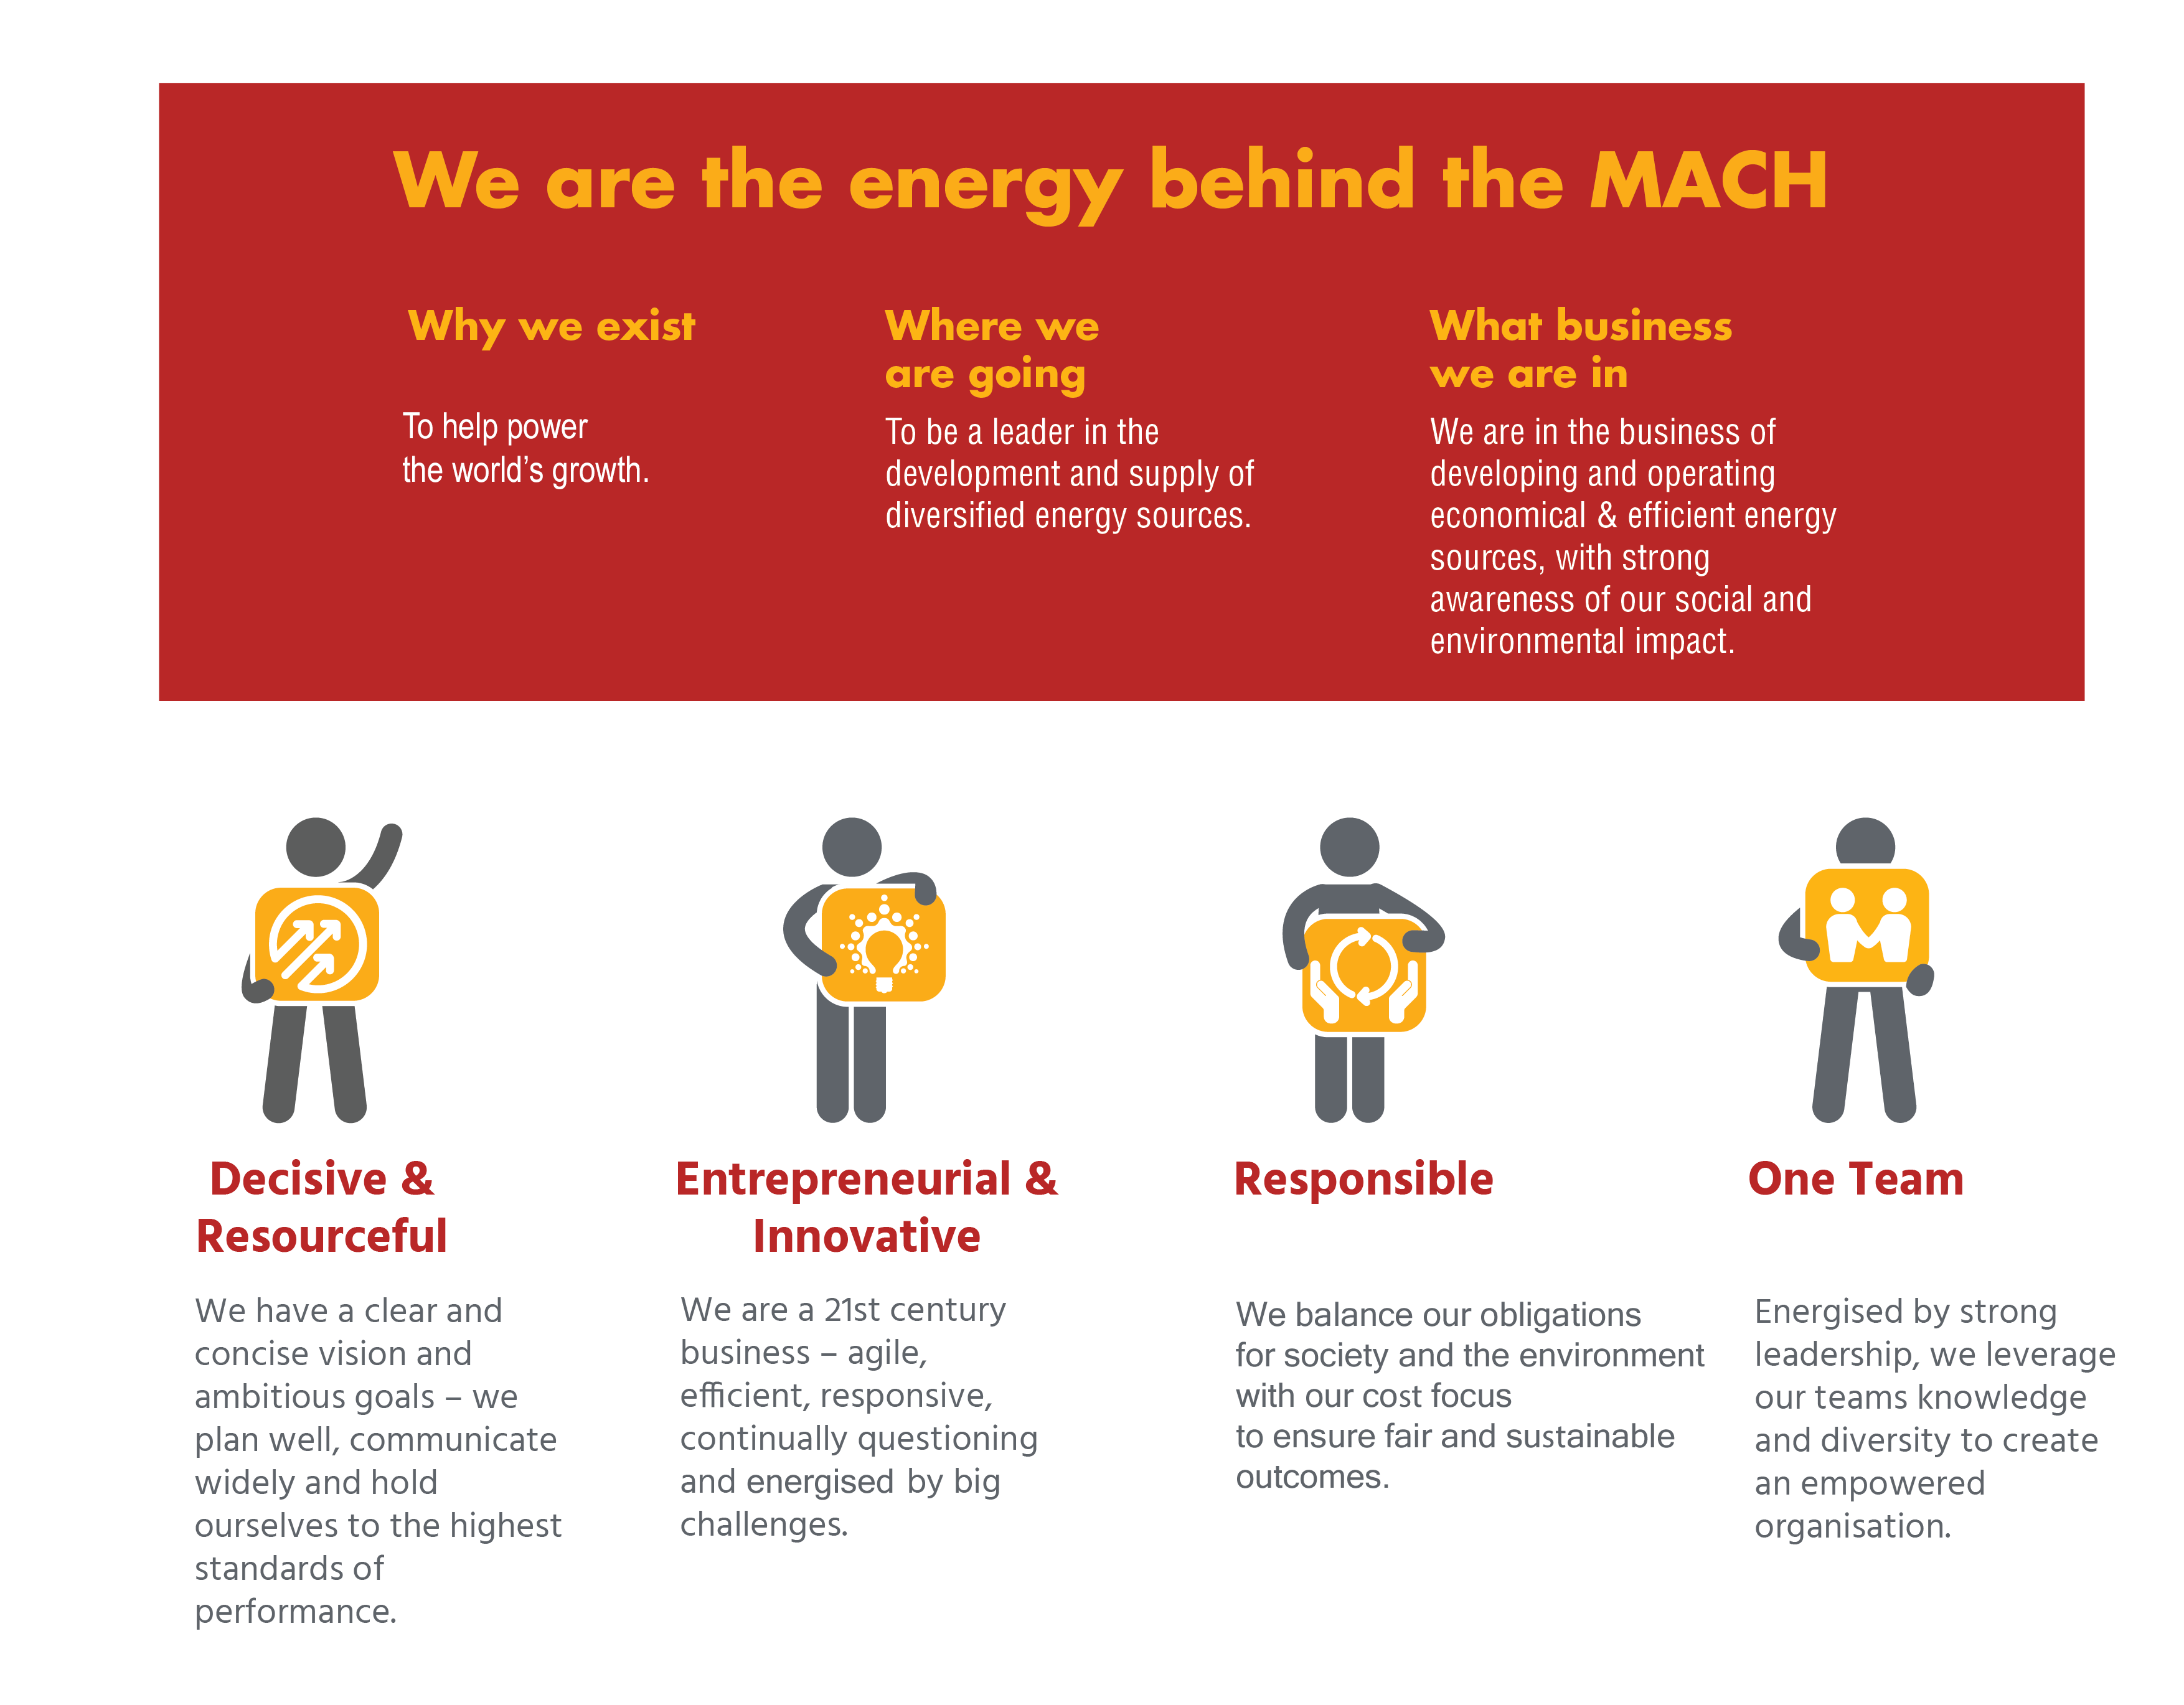 MACH Energy Web Site Why We Exist edited